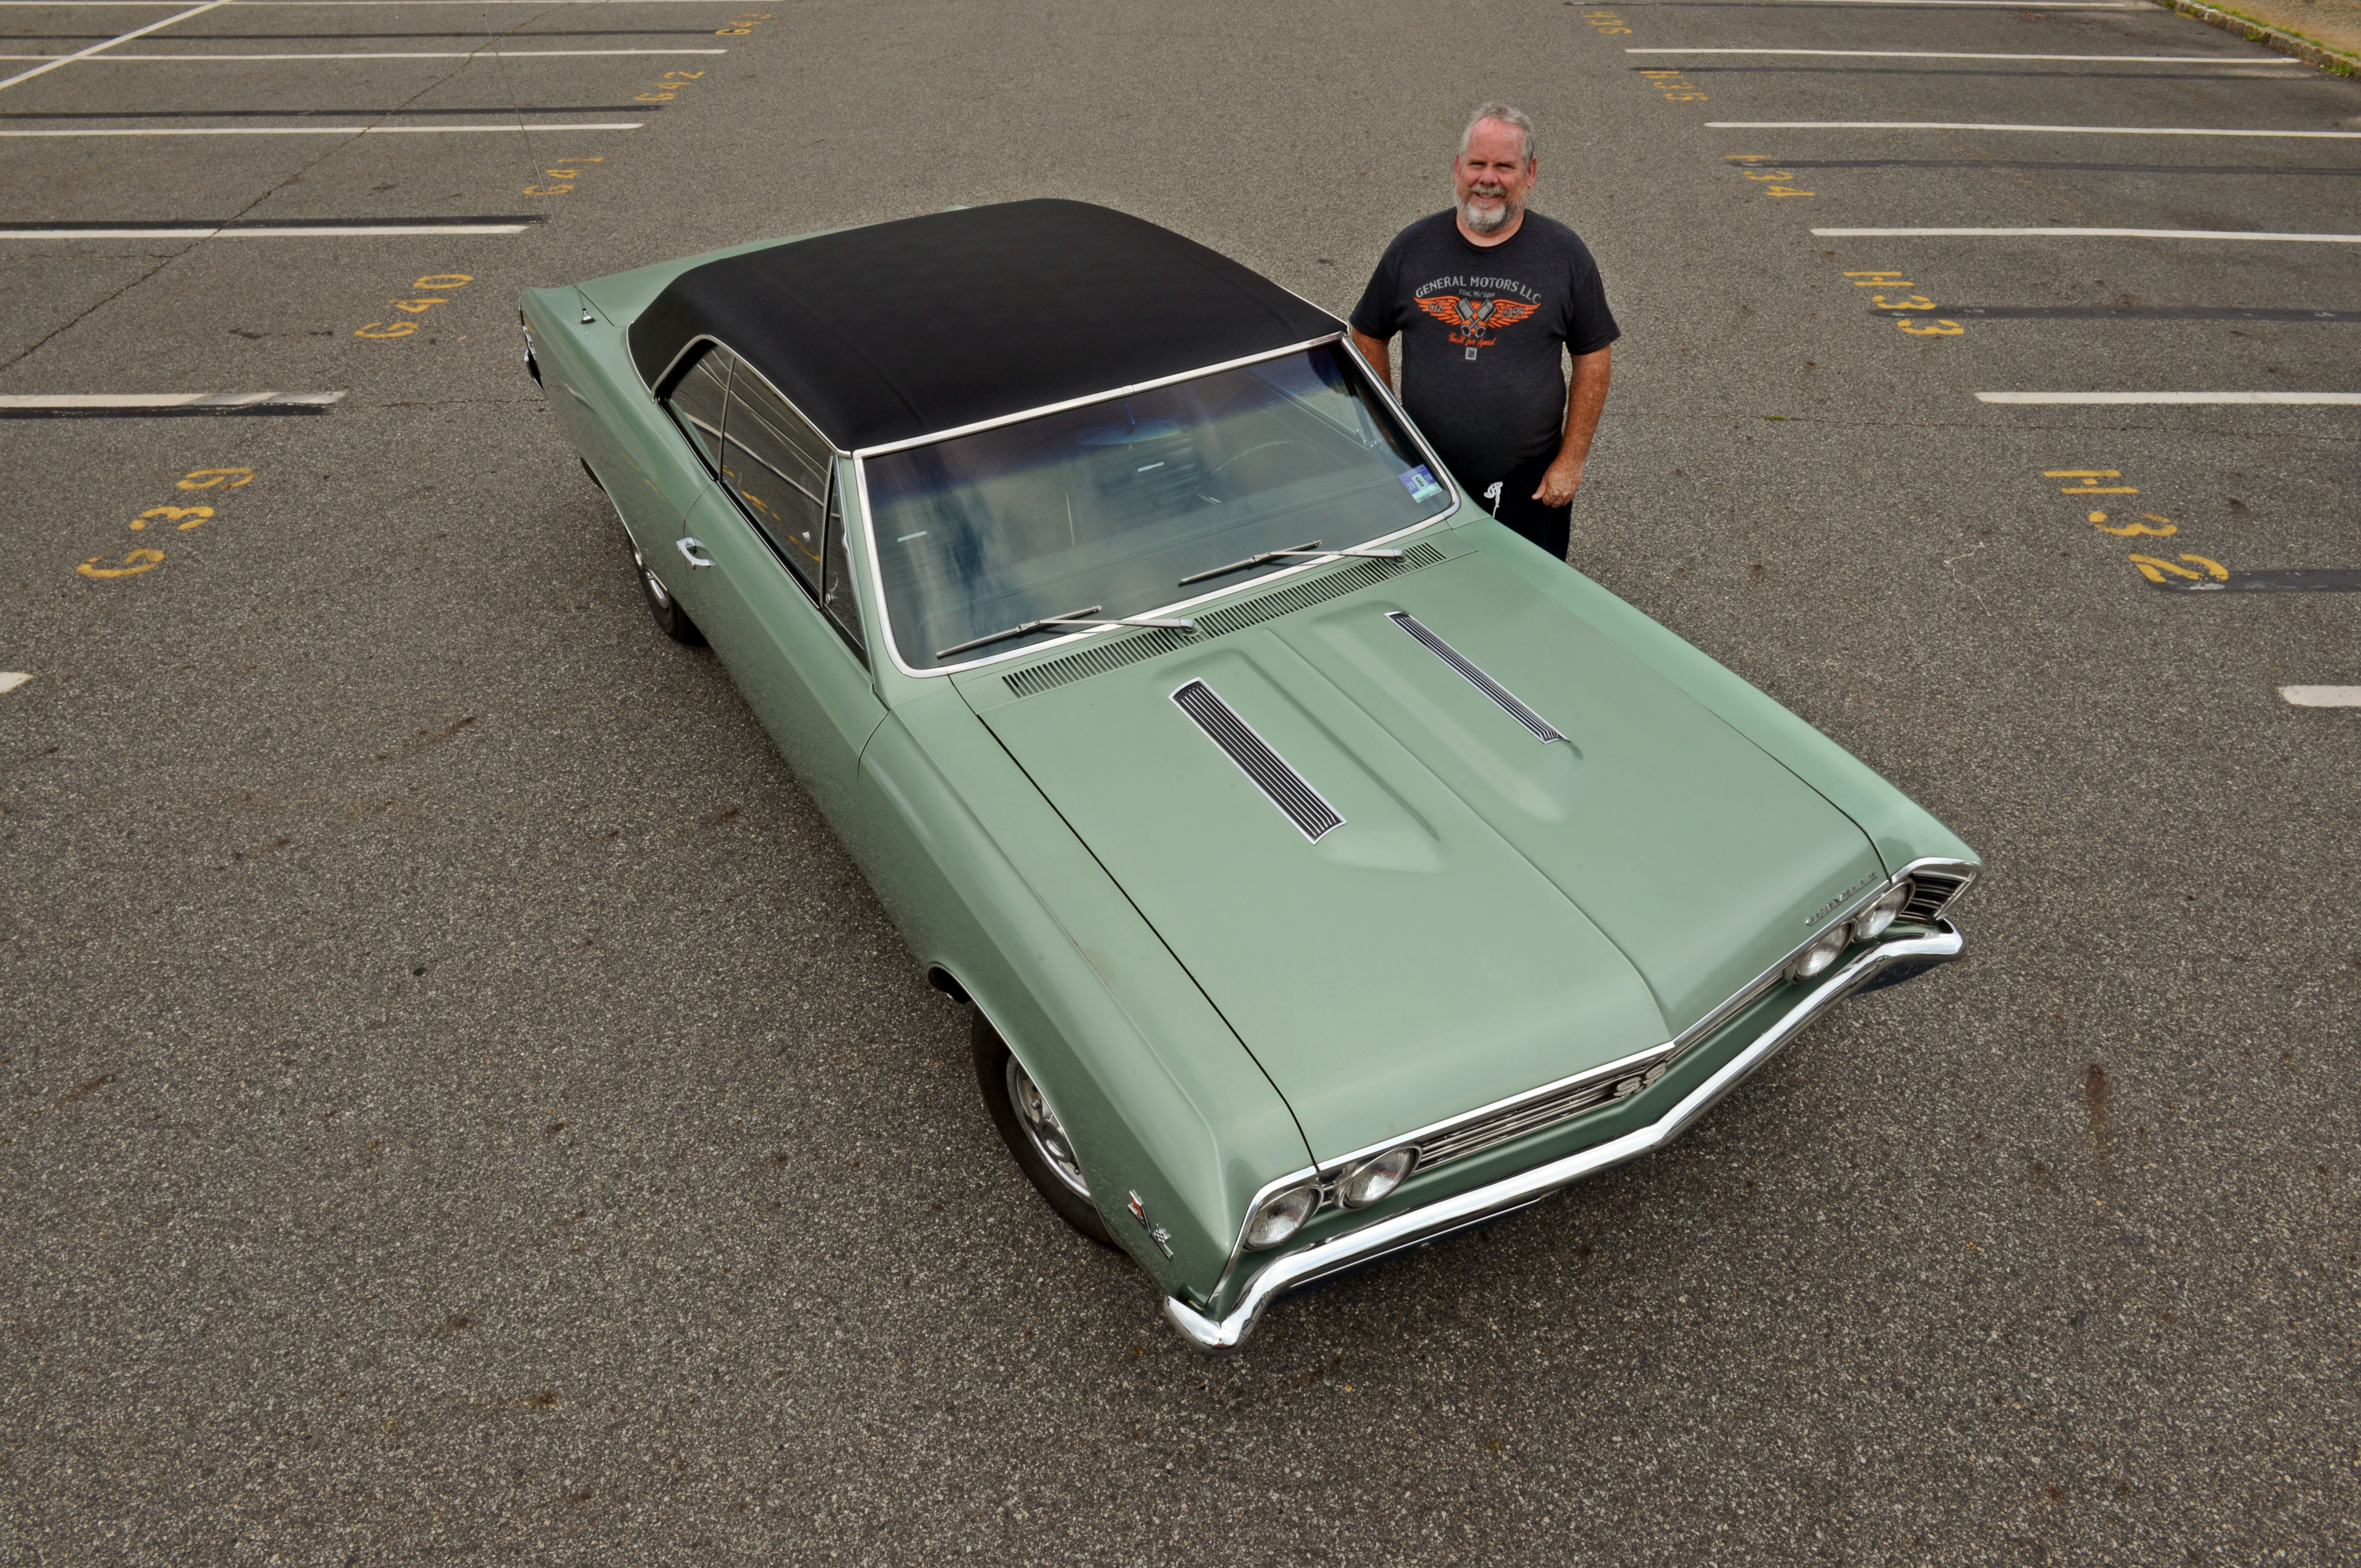 If you asked his friends which of all the cars he owns best represents Ray's personality and style, hands-down they would say the 1967 Chevelle. He fell in love with the car's aggressive looks and slick roofline at first sight and knew deep down that one day he would have one of his own.